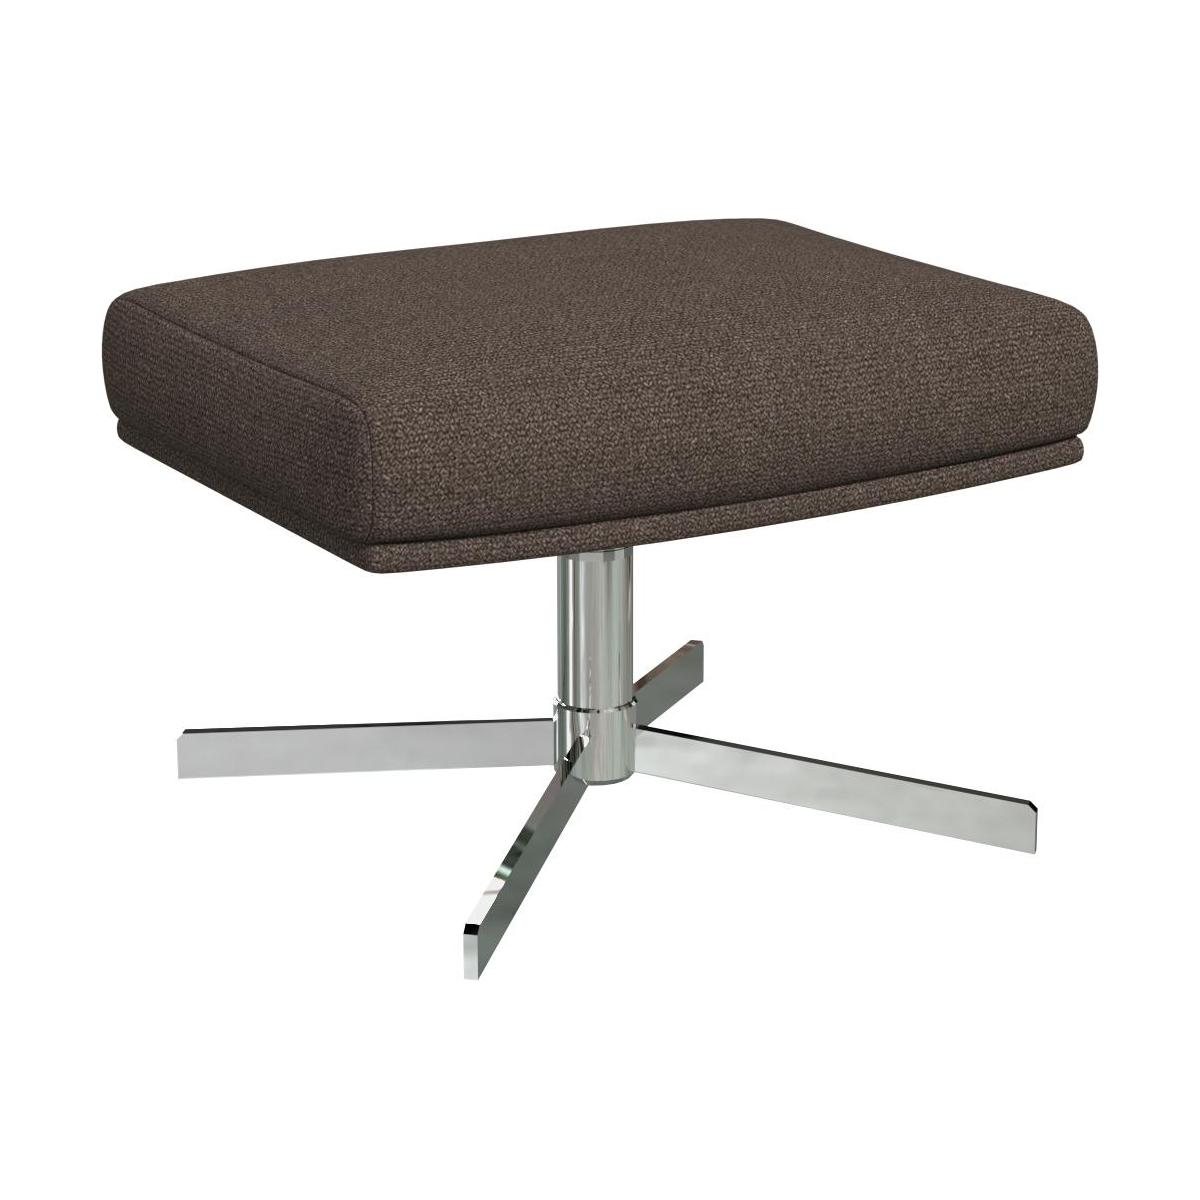 Footstool in Lecce fabric, muscat with metal cross leg n°1